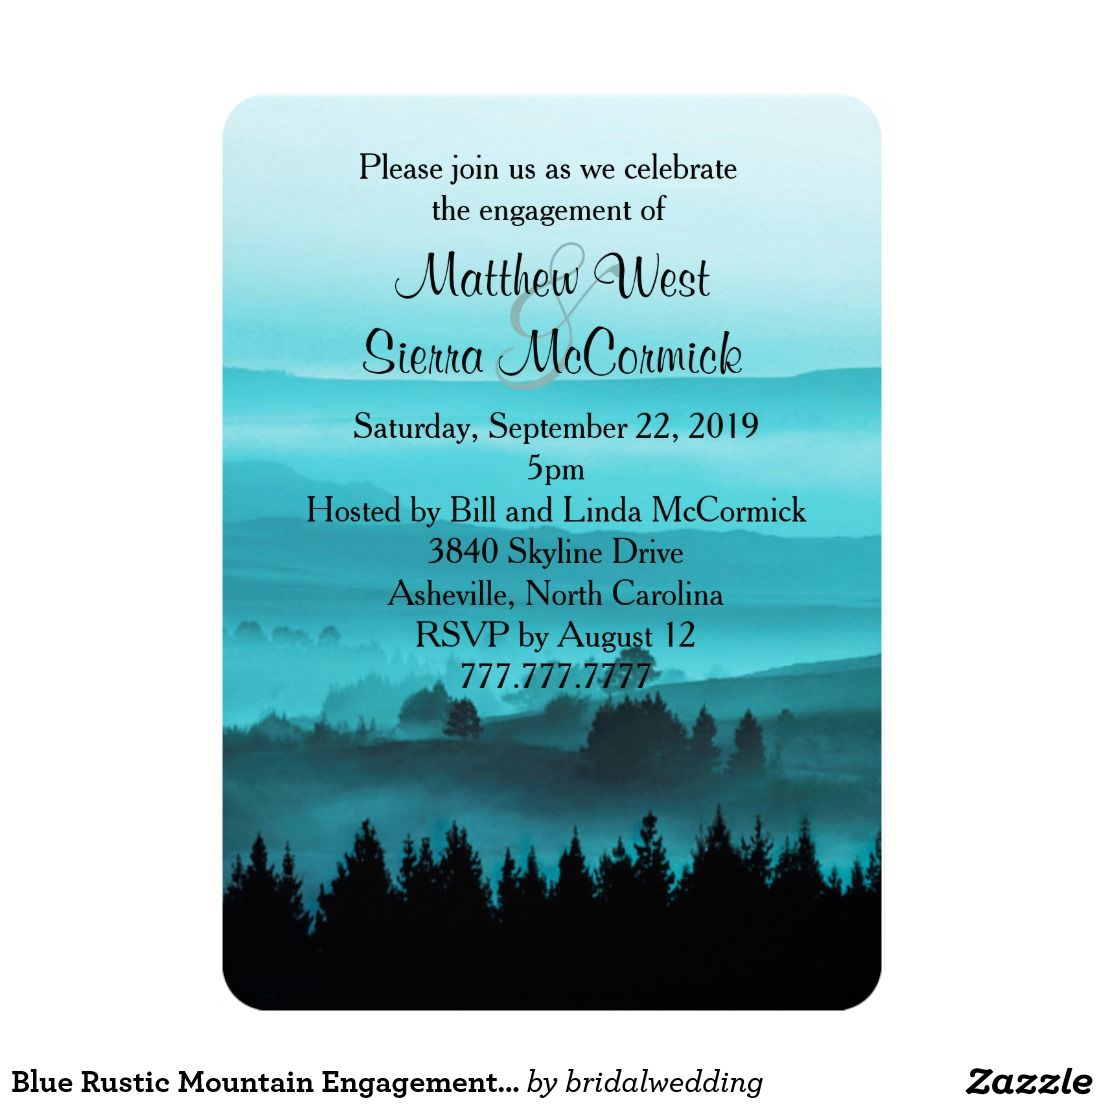 Blue Rustic Mountain Engagement Party Invitation   Wedding ...